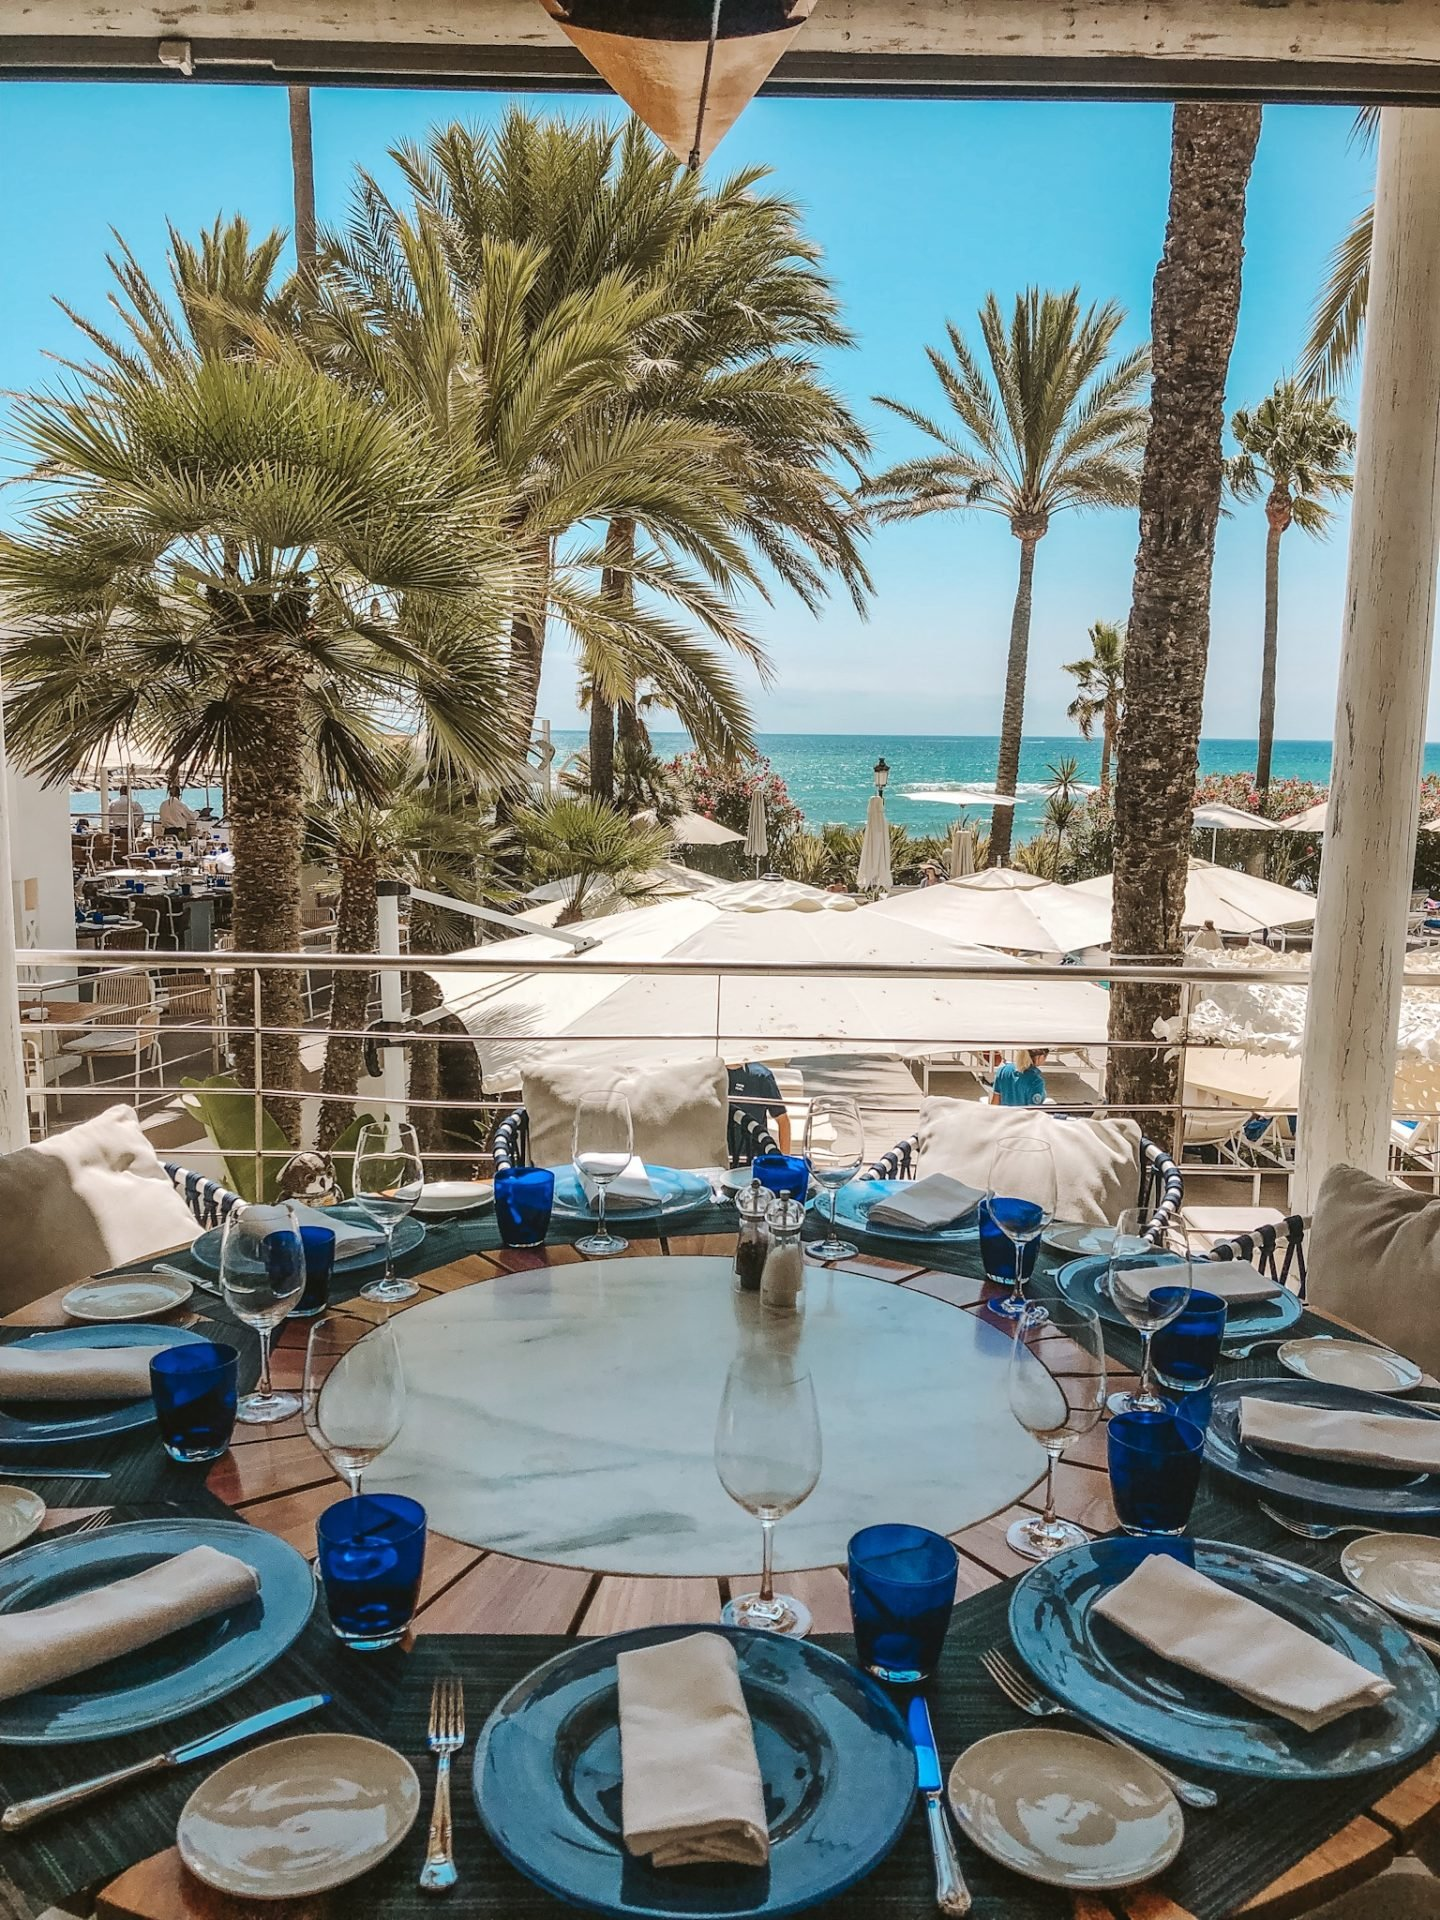 This upscale beach resort area is frequented by the rich and famous. Here you will find the Puente Romano Hotel and some other luxury restaurants and hotels such as The Sea Grill and the Marbella club.